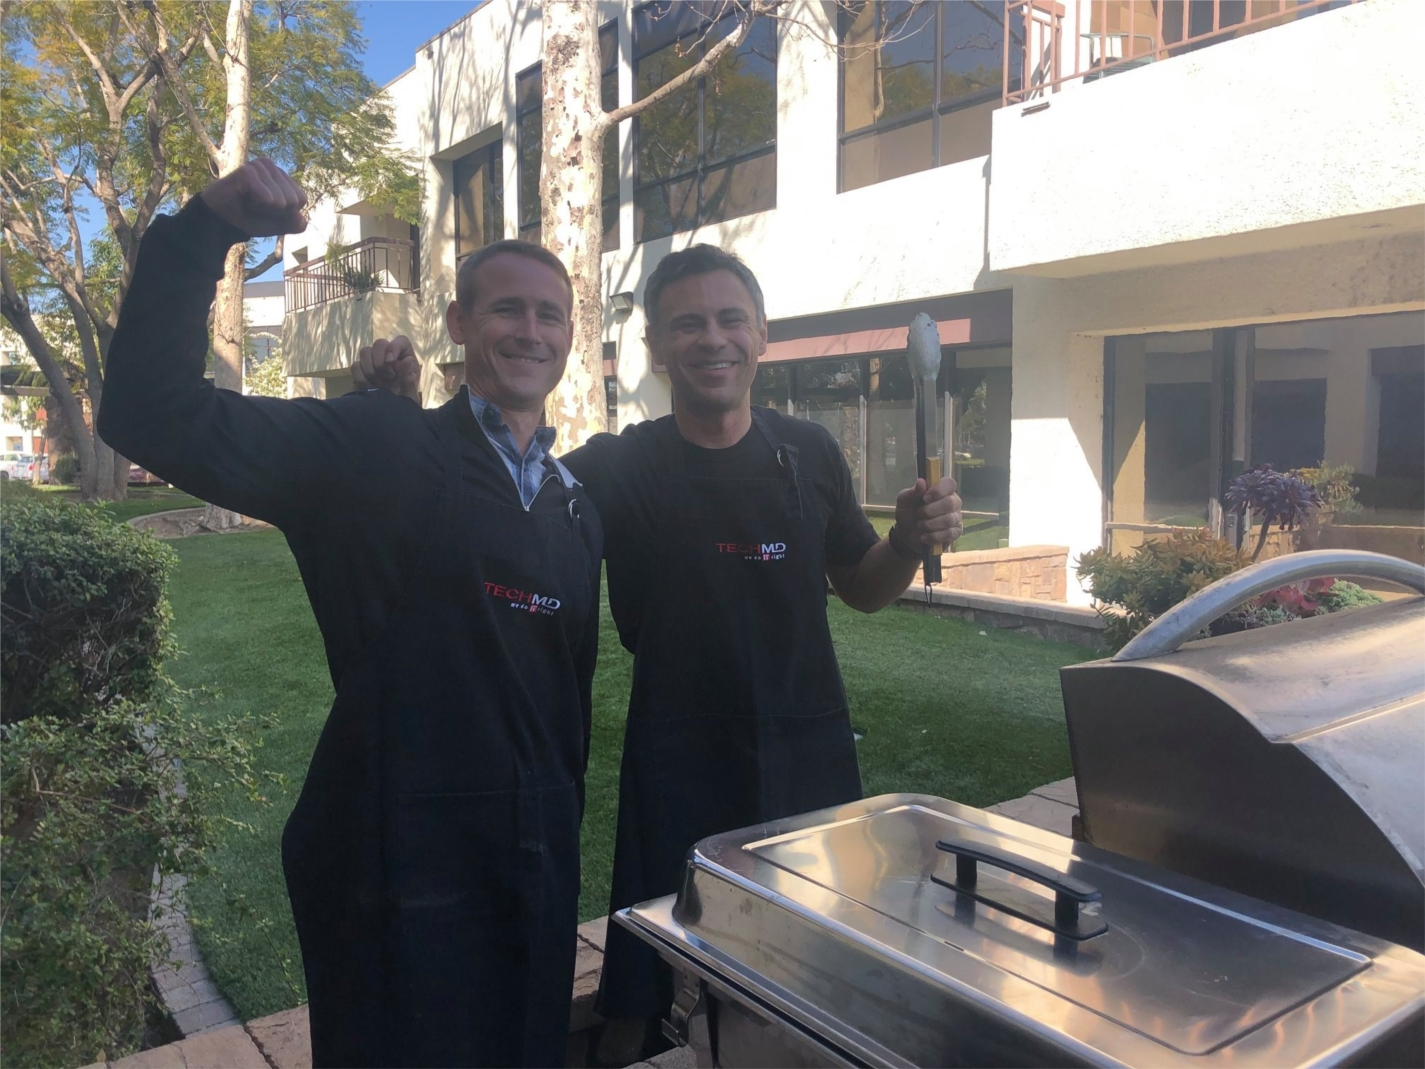 Our President, David Bryden, and our CEO, Sebastian Igreti, showing the team some love with a BBQ Lunch Cookout for Valentine's Day